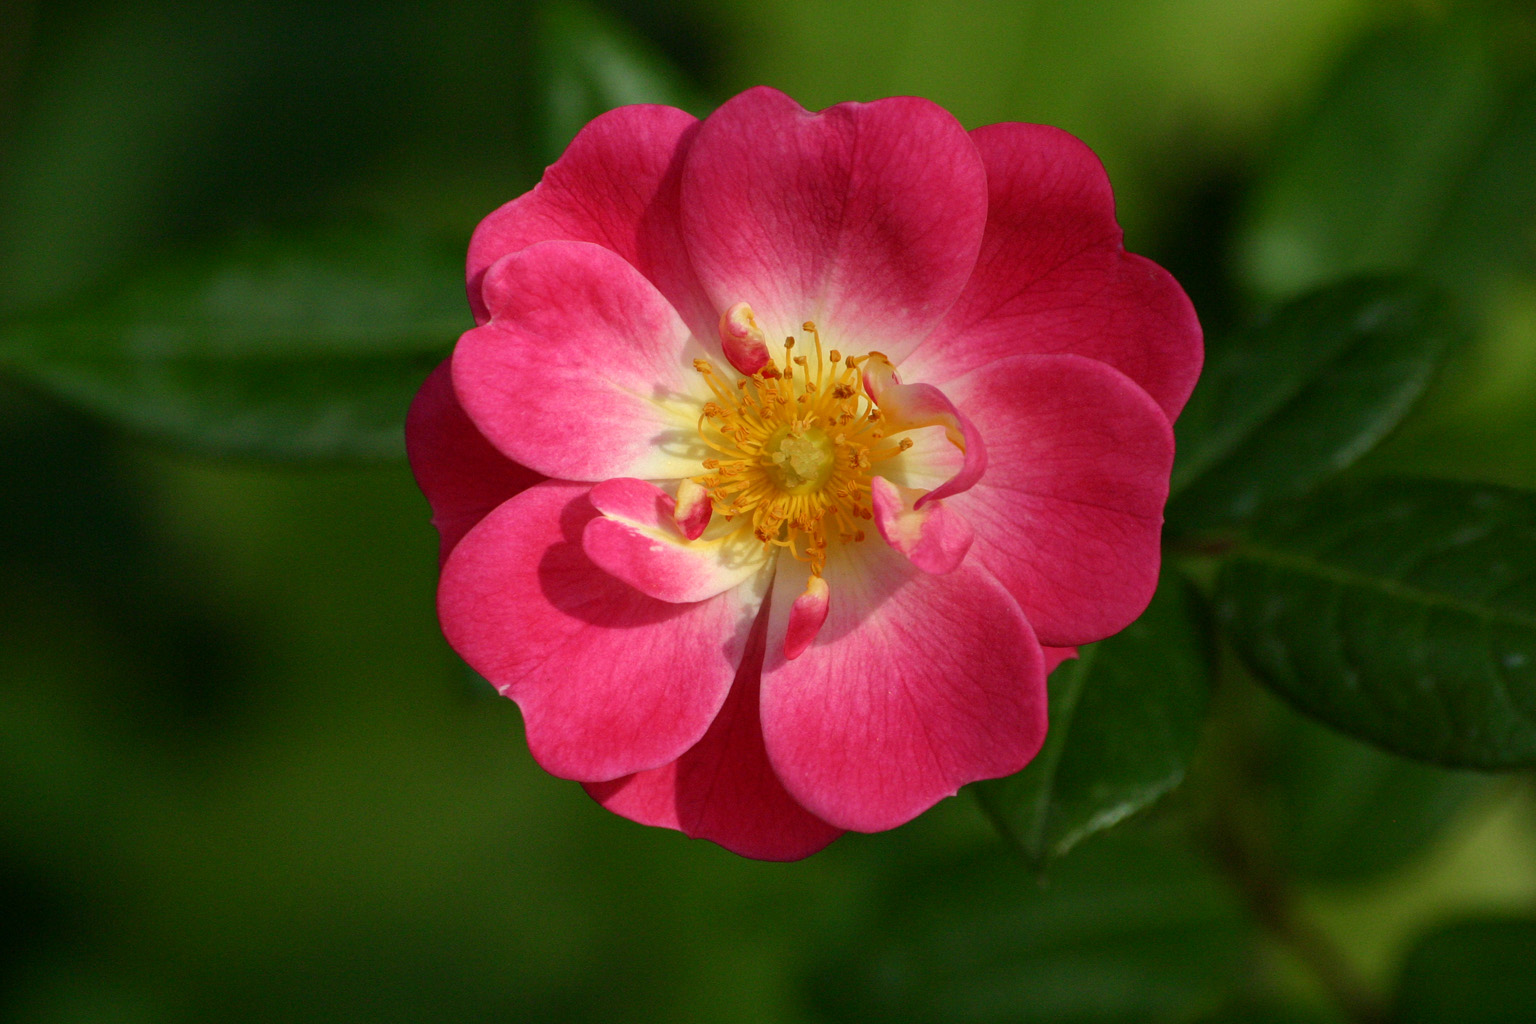 Pink Flower On Freemages